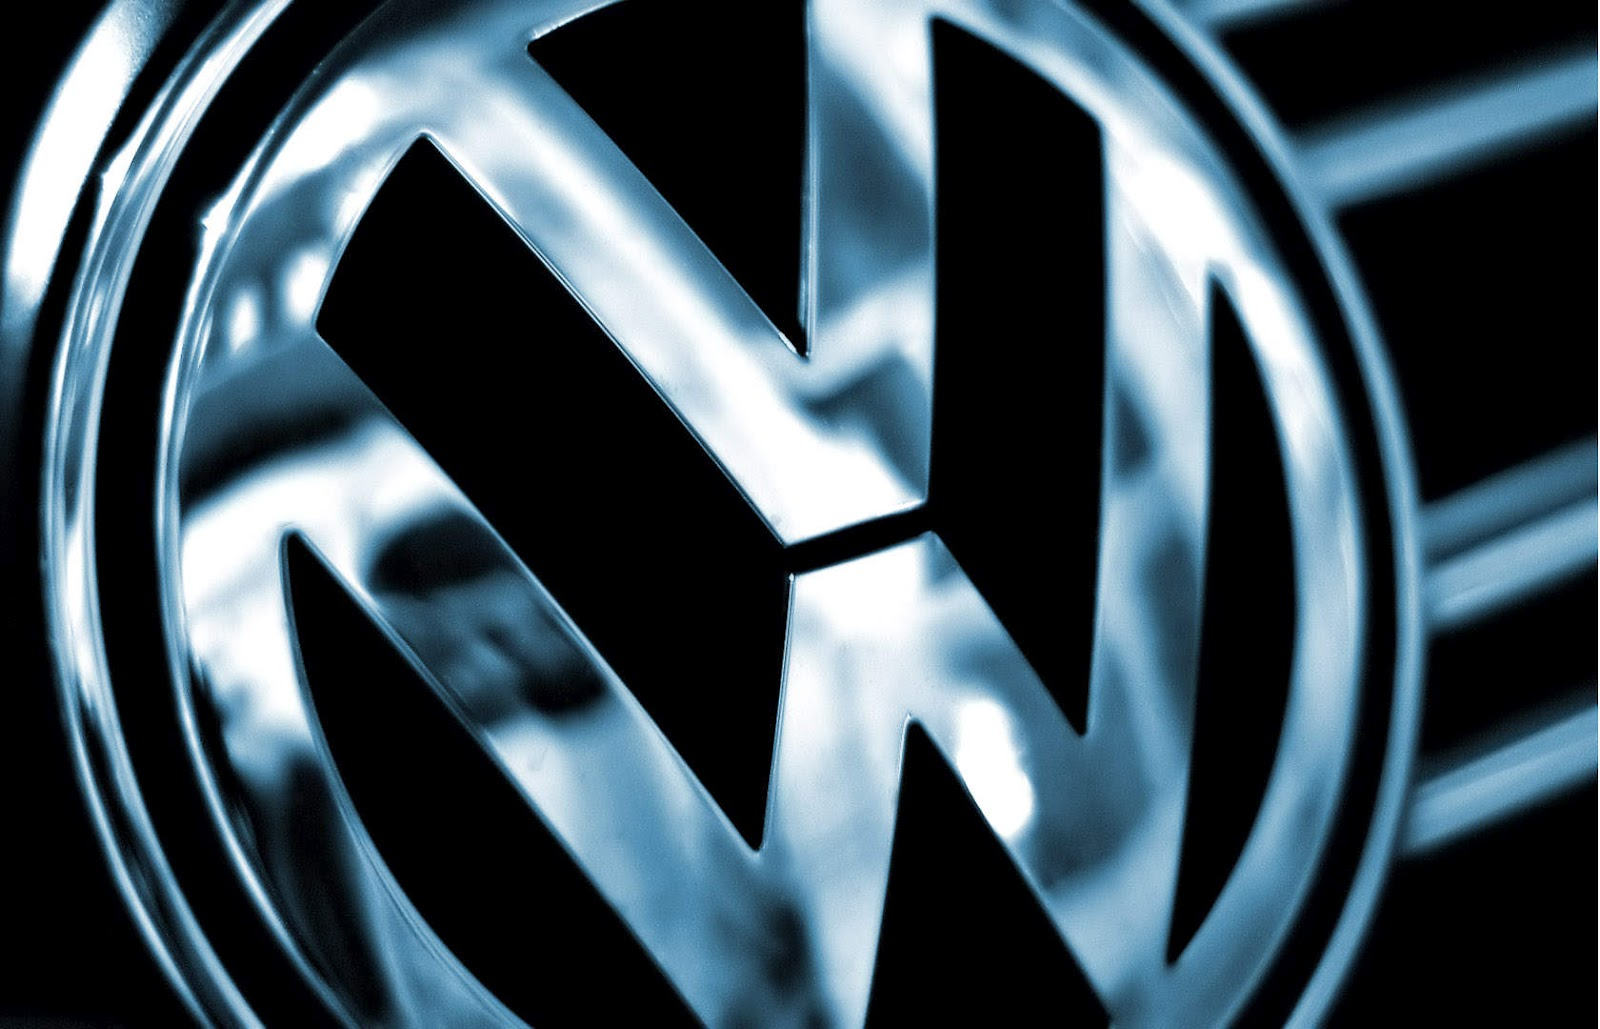 HD Wallpapers Volkswagen Logo Wallpaper 1600x1029